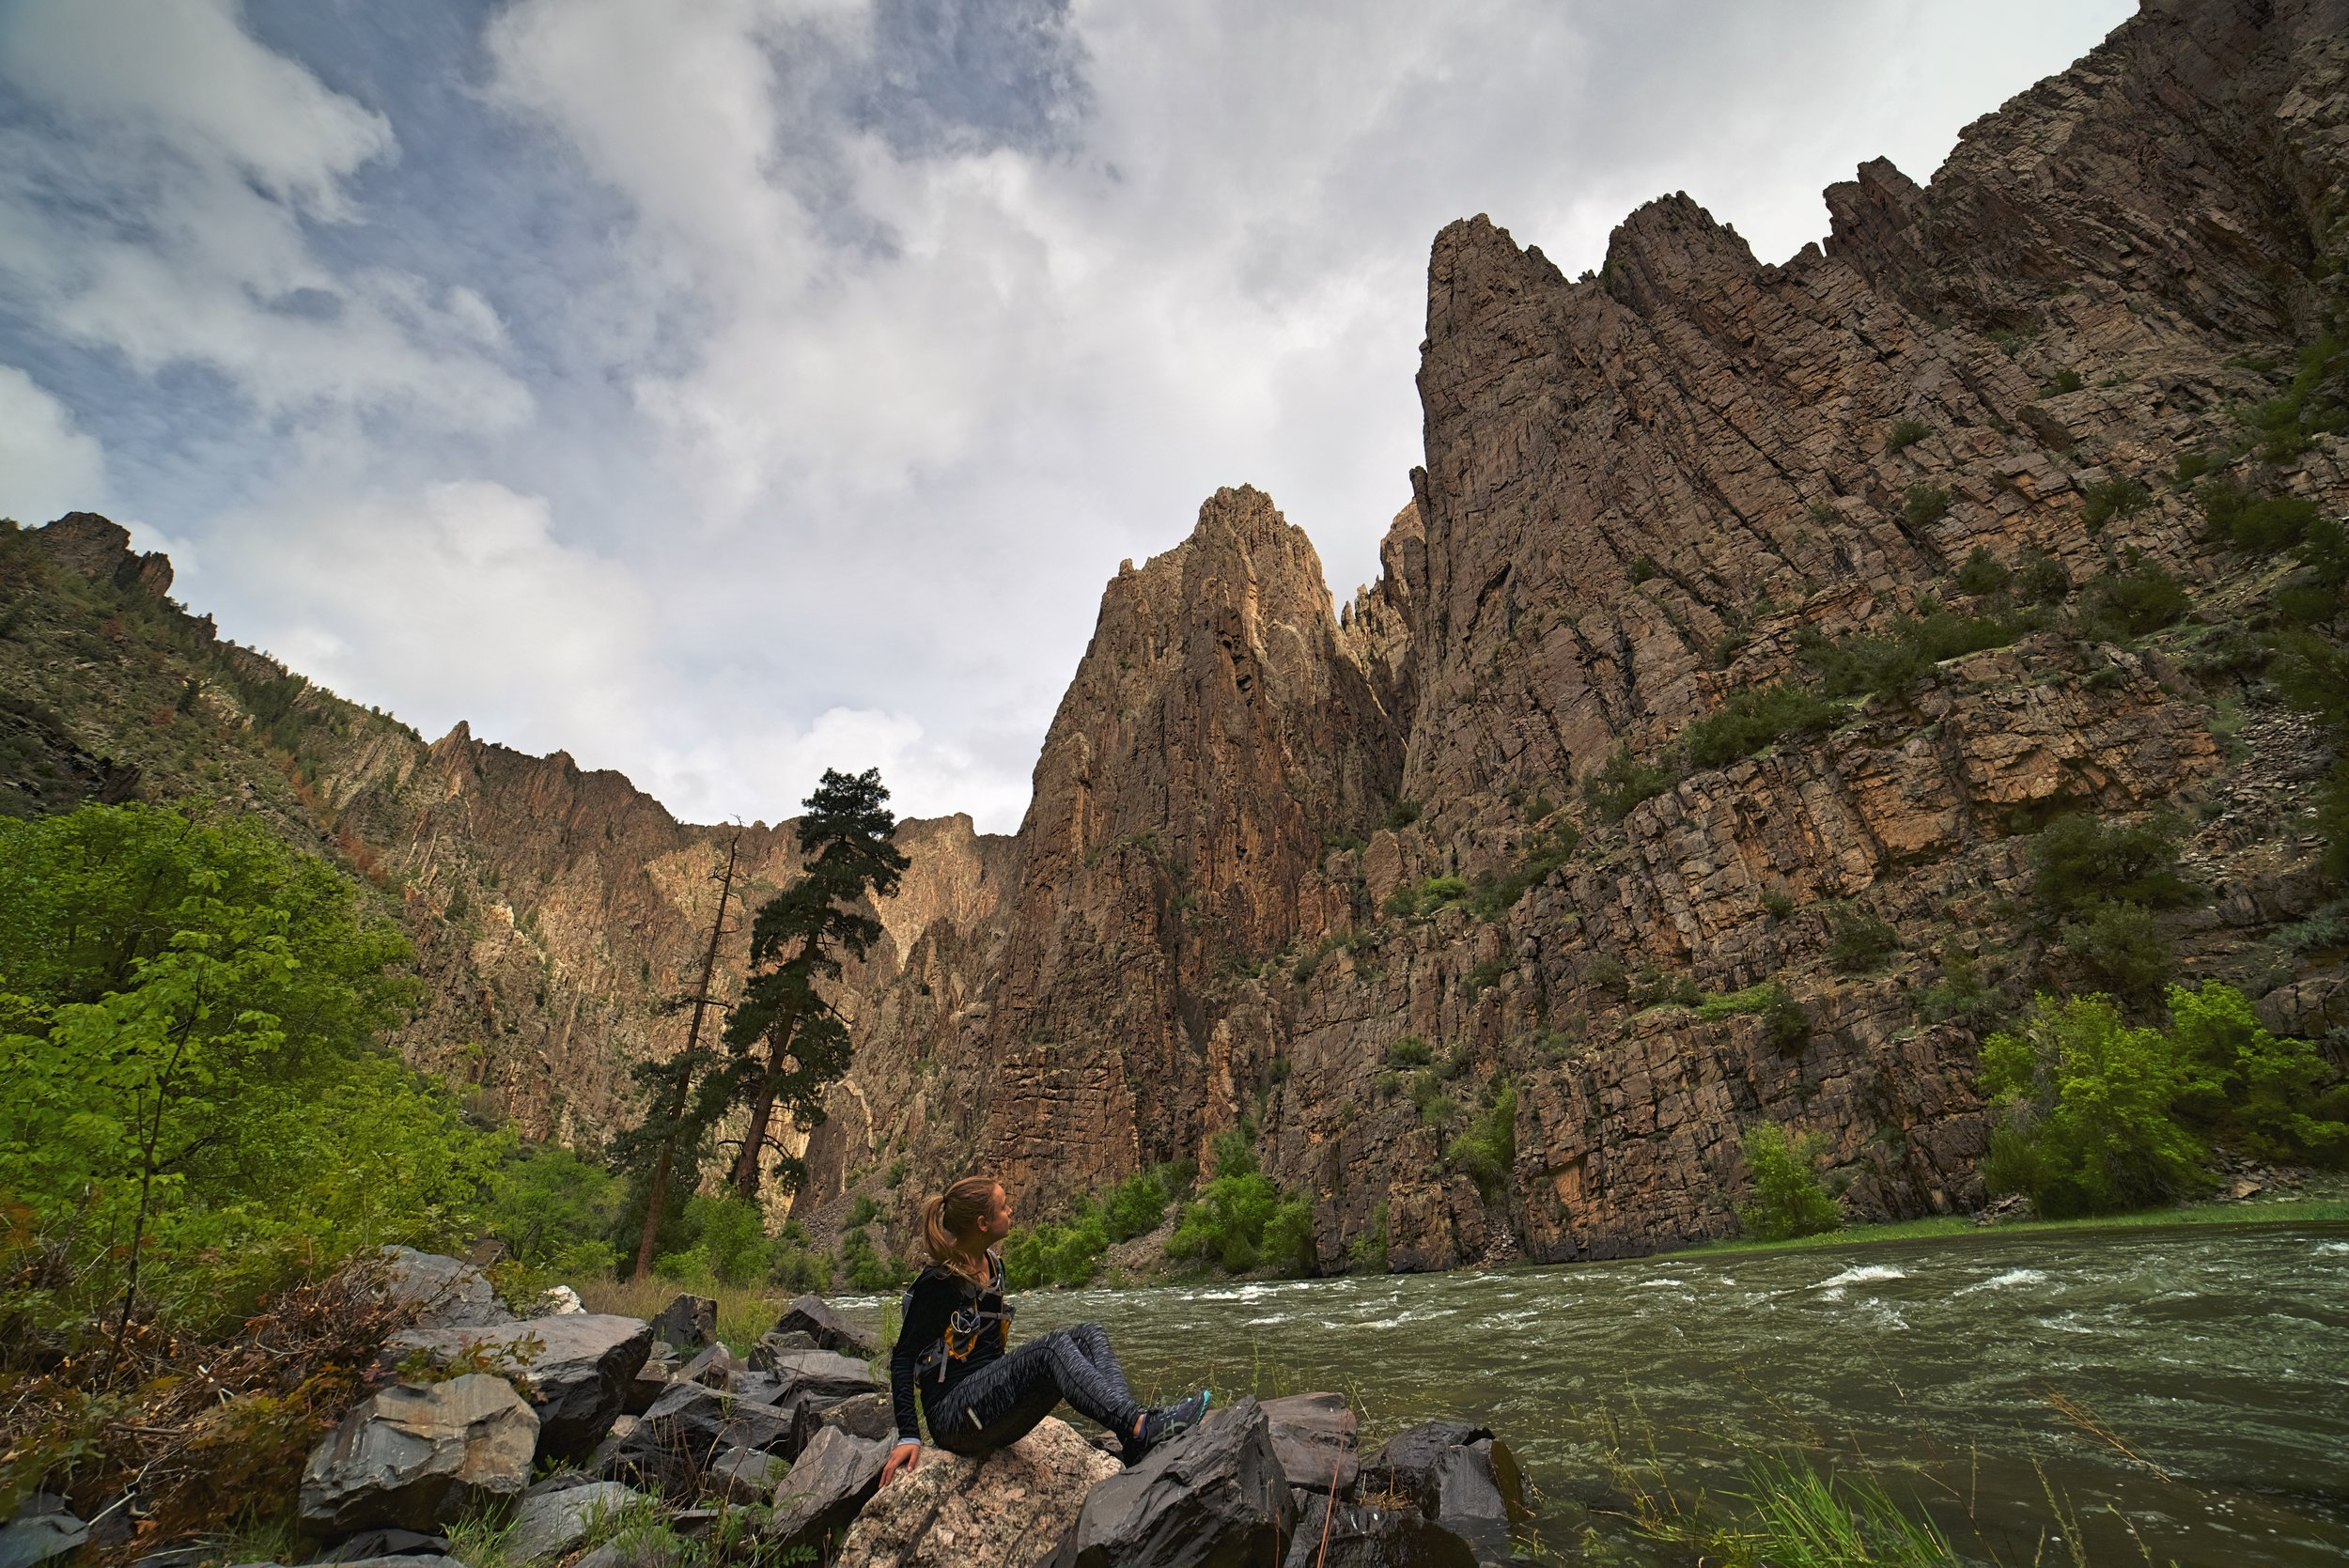 Hiking Down Canyon into the Black Canyon of the Gunnison